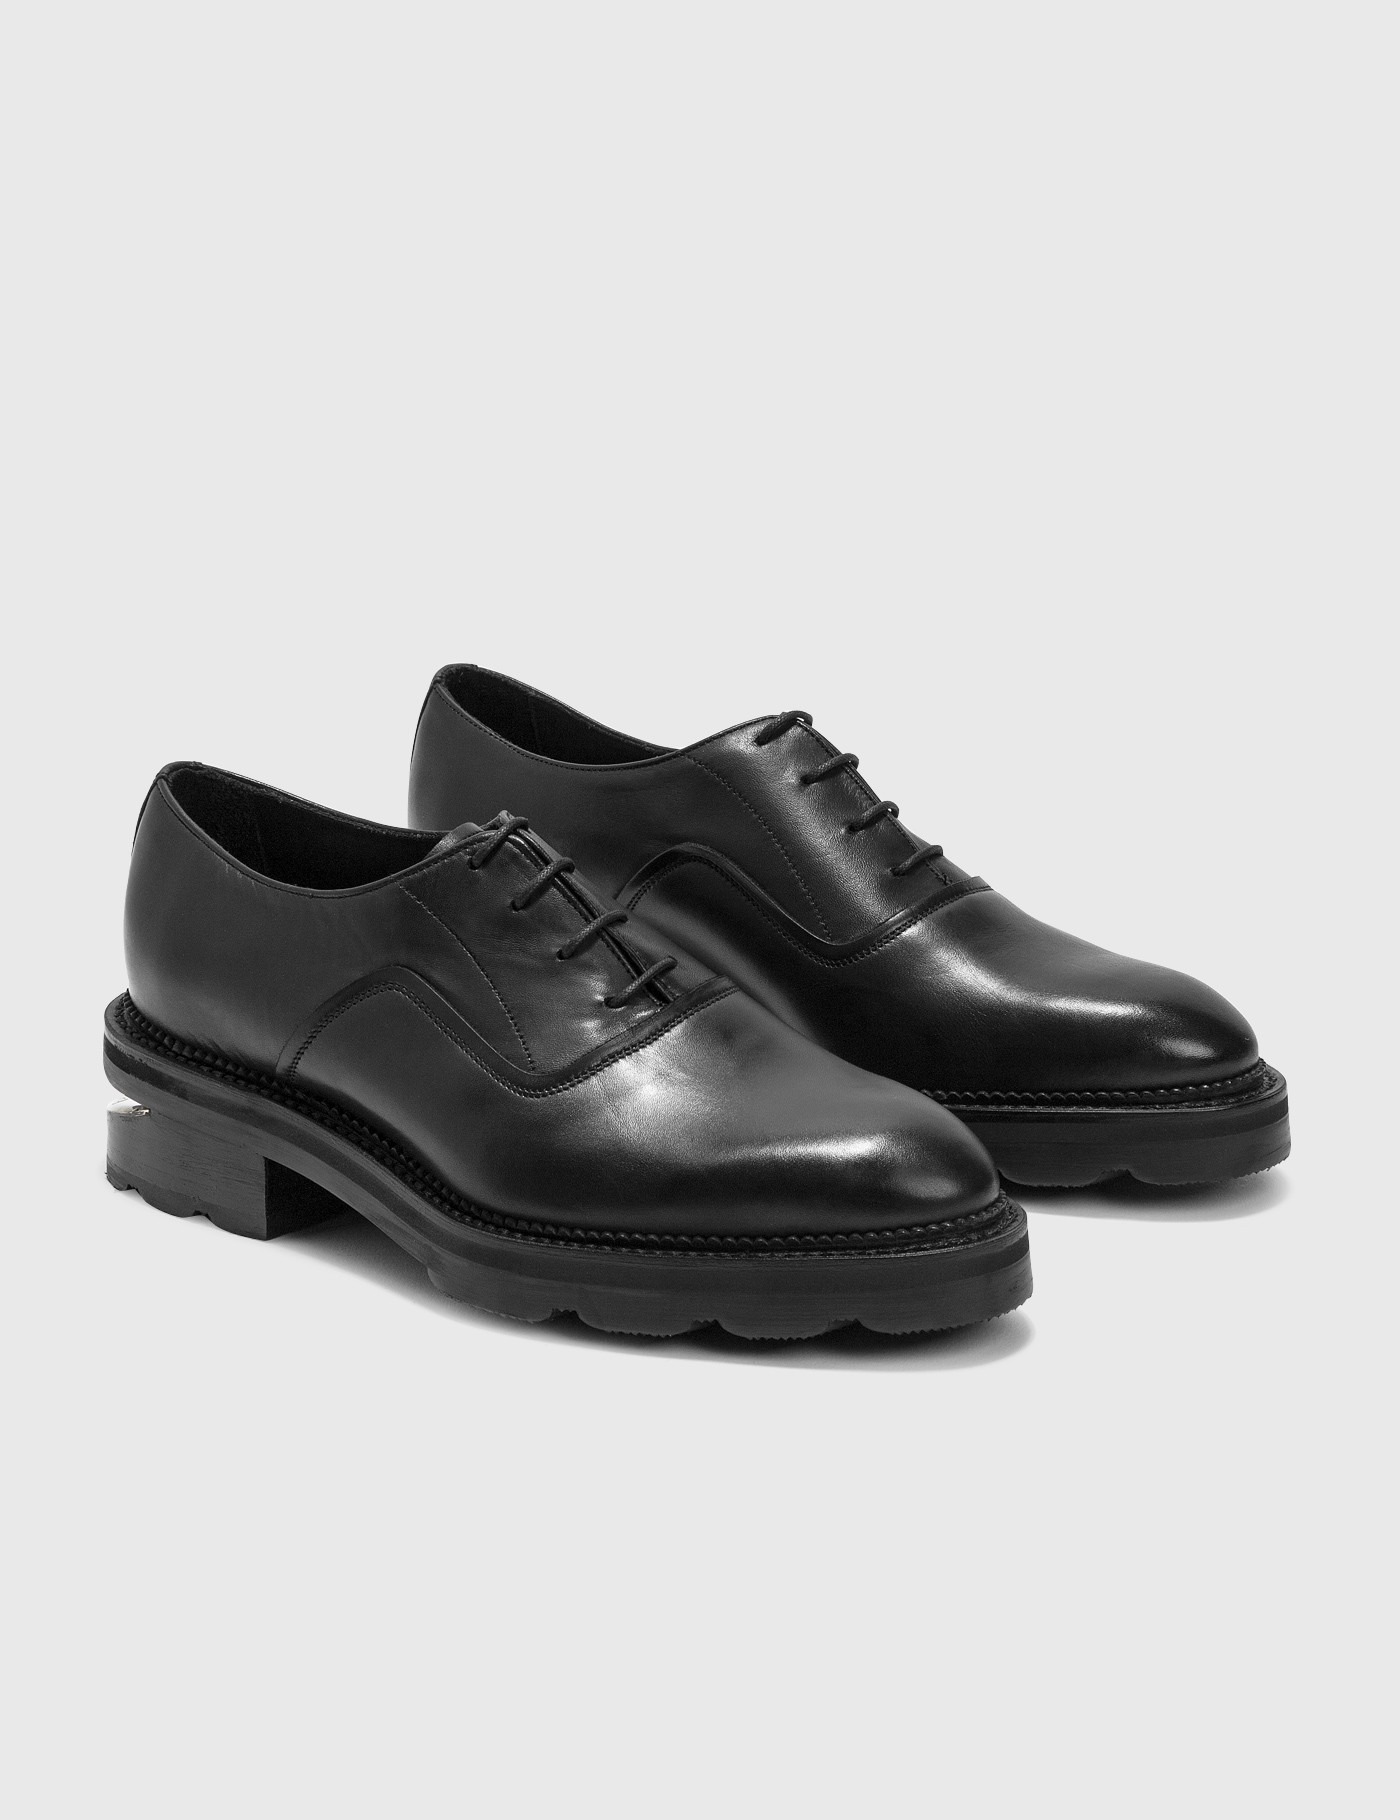 Alexander Wang ANDY OXFORD LEATHER SHOES